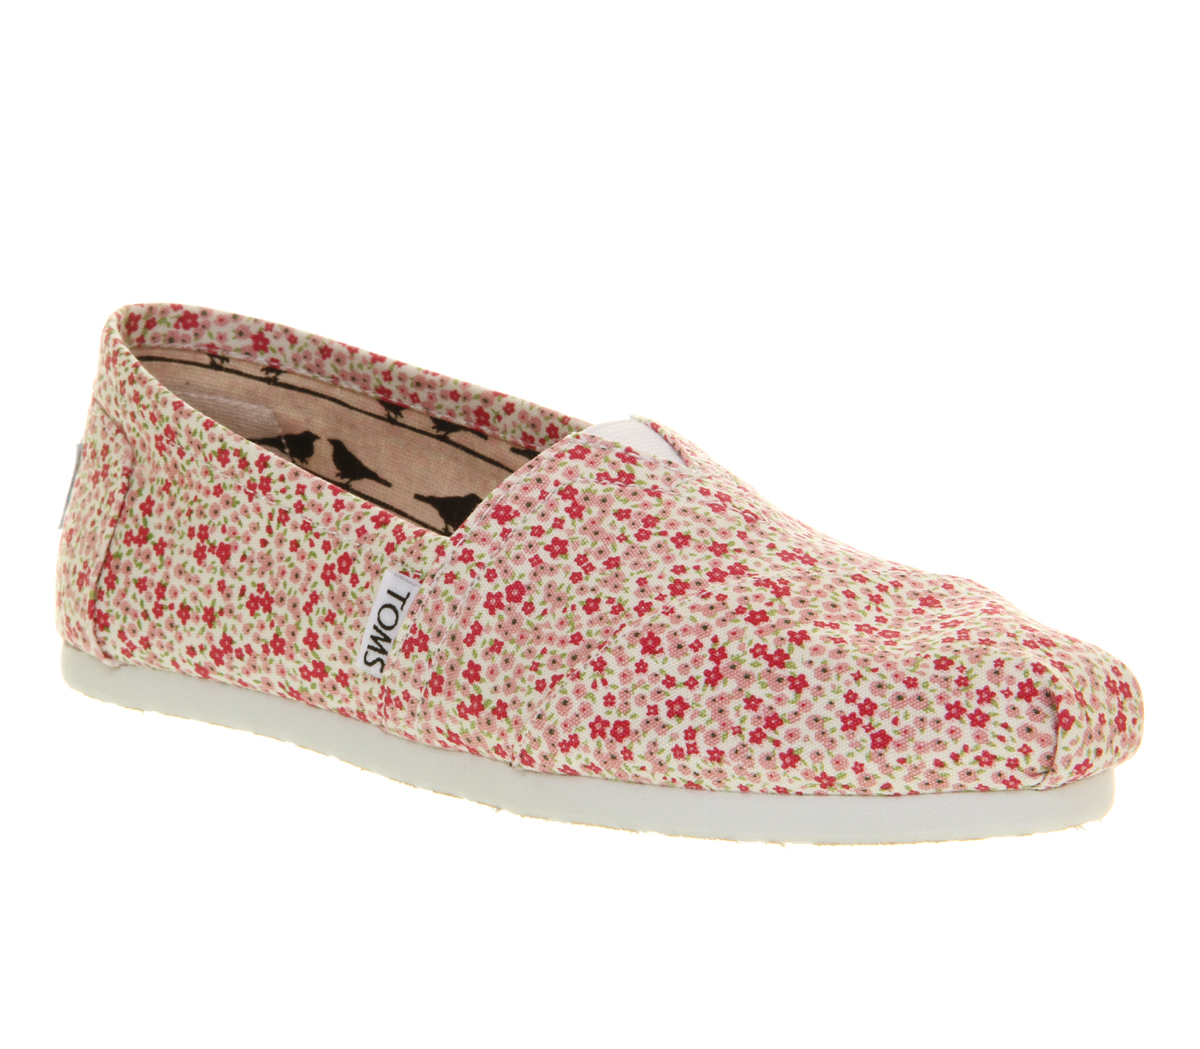 Womens-Toms-Classic-Slip-On-Ditsy-Floral-Berry-Exclusive-Flats